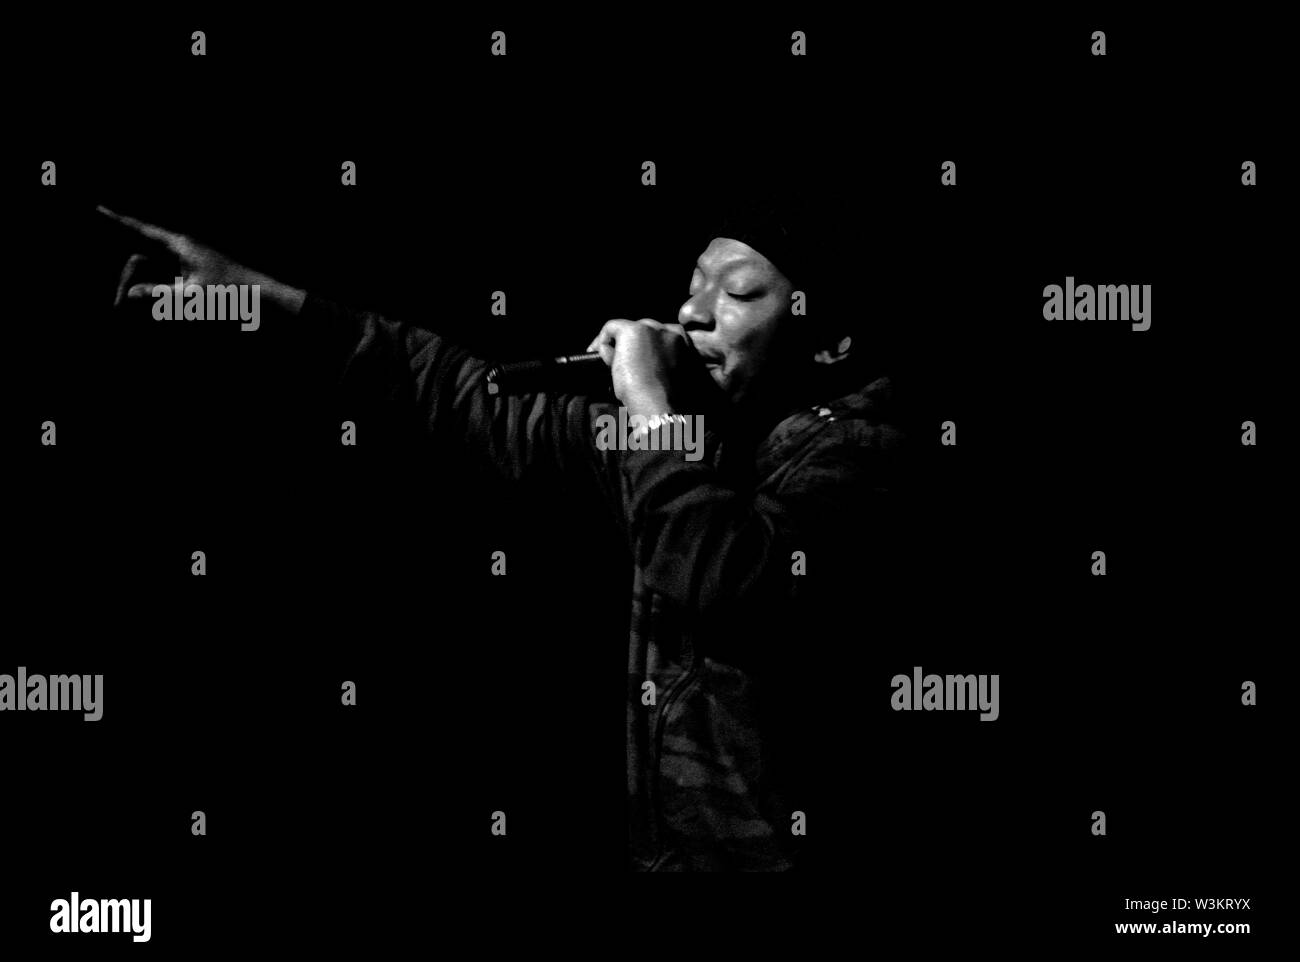 Rodney Smith AKA Roots Manuva on stage - Stock Image